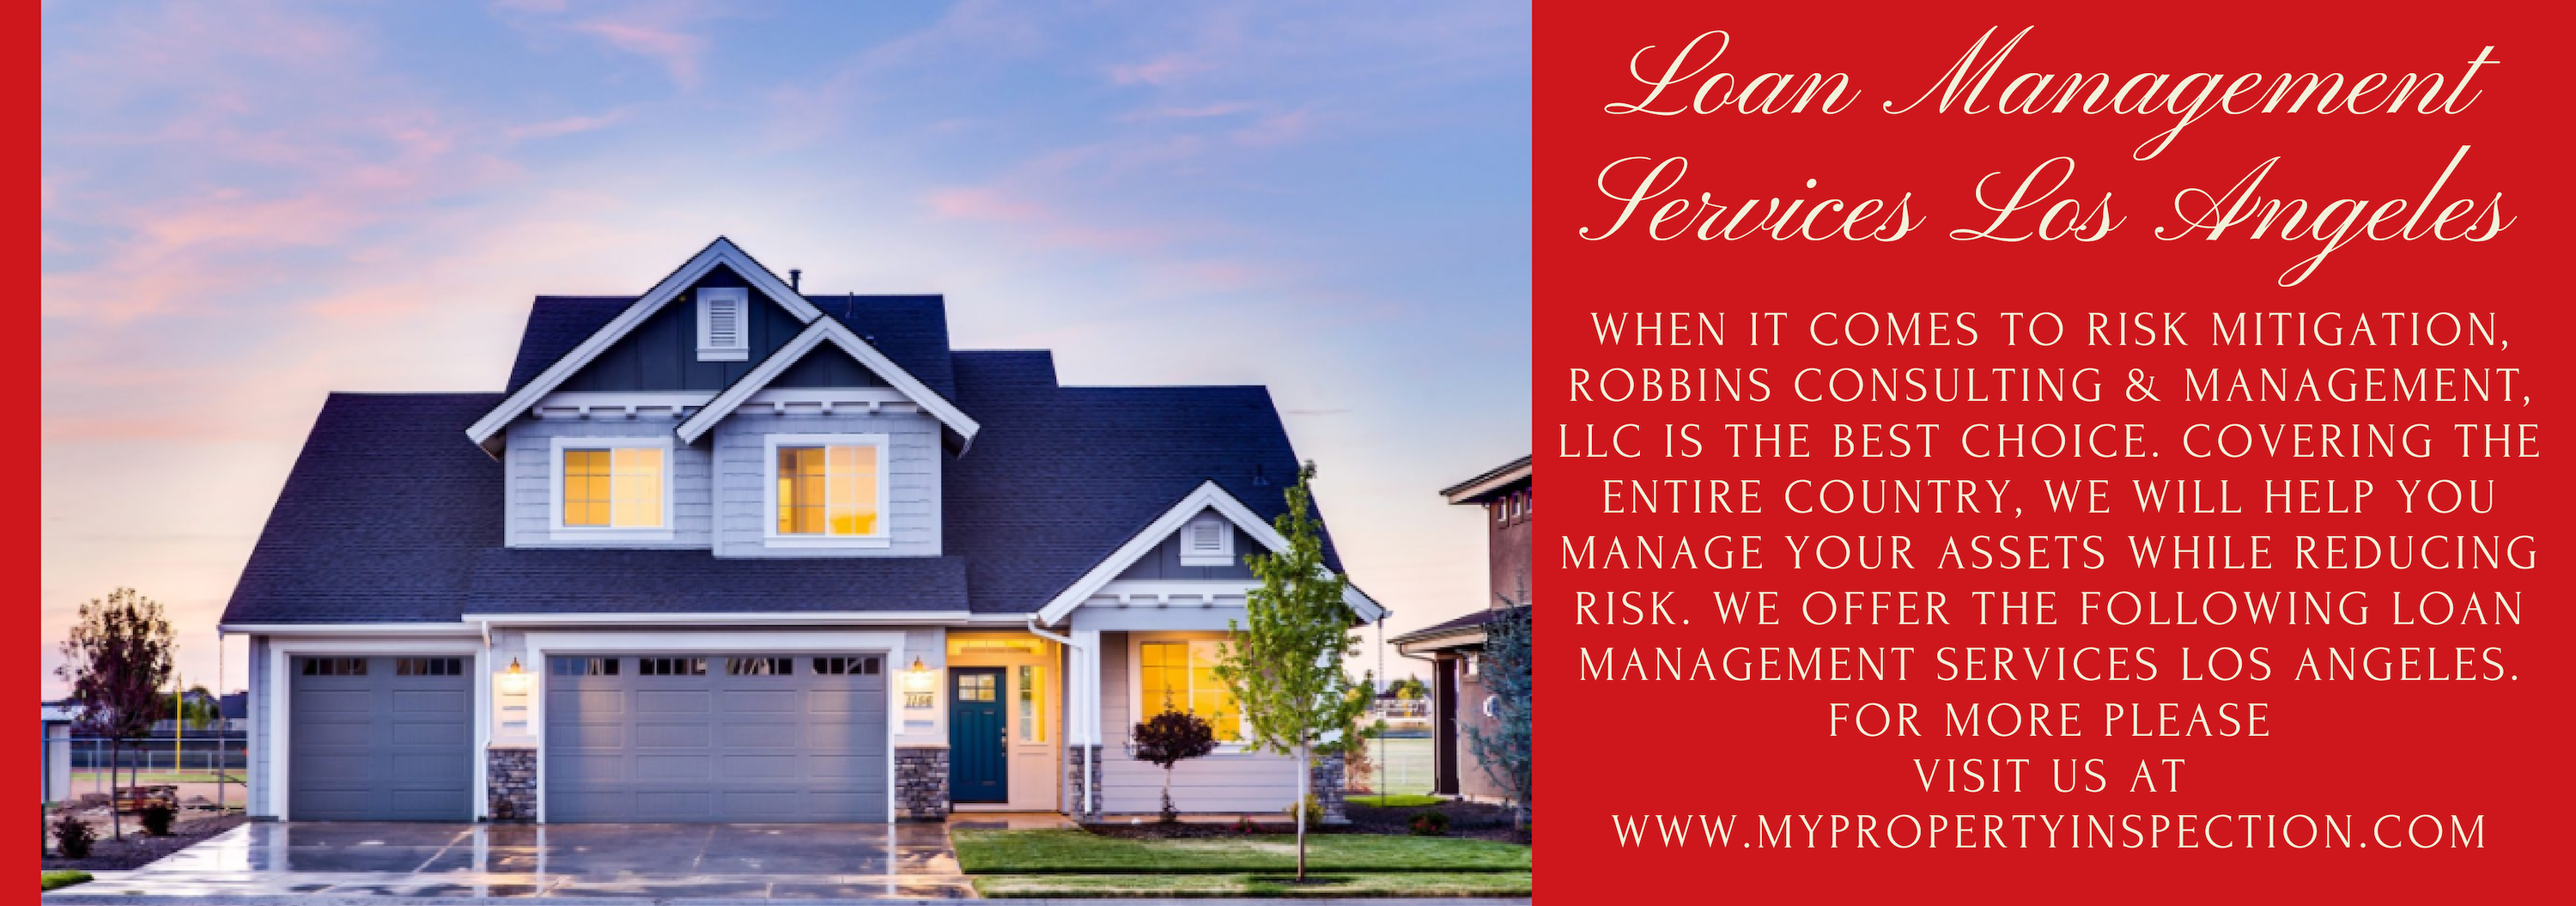 Loan Management Services Los Angeles Management Consulting Things To Come